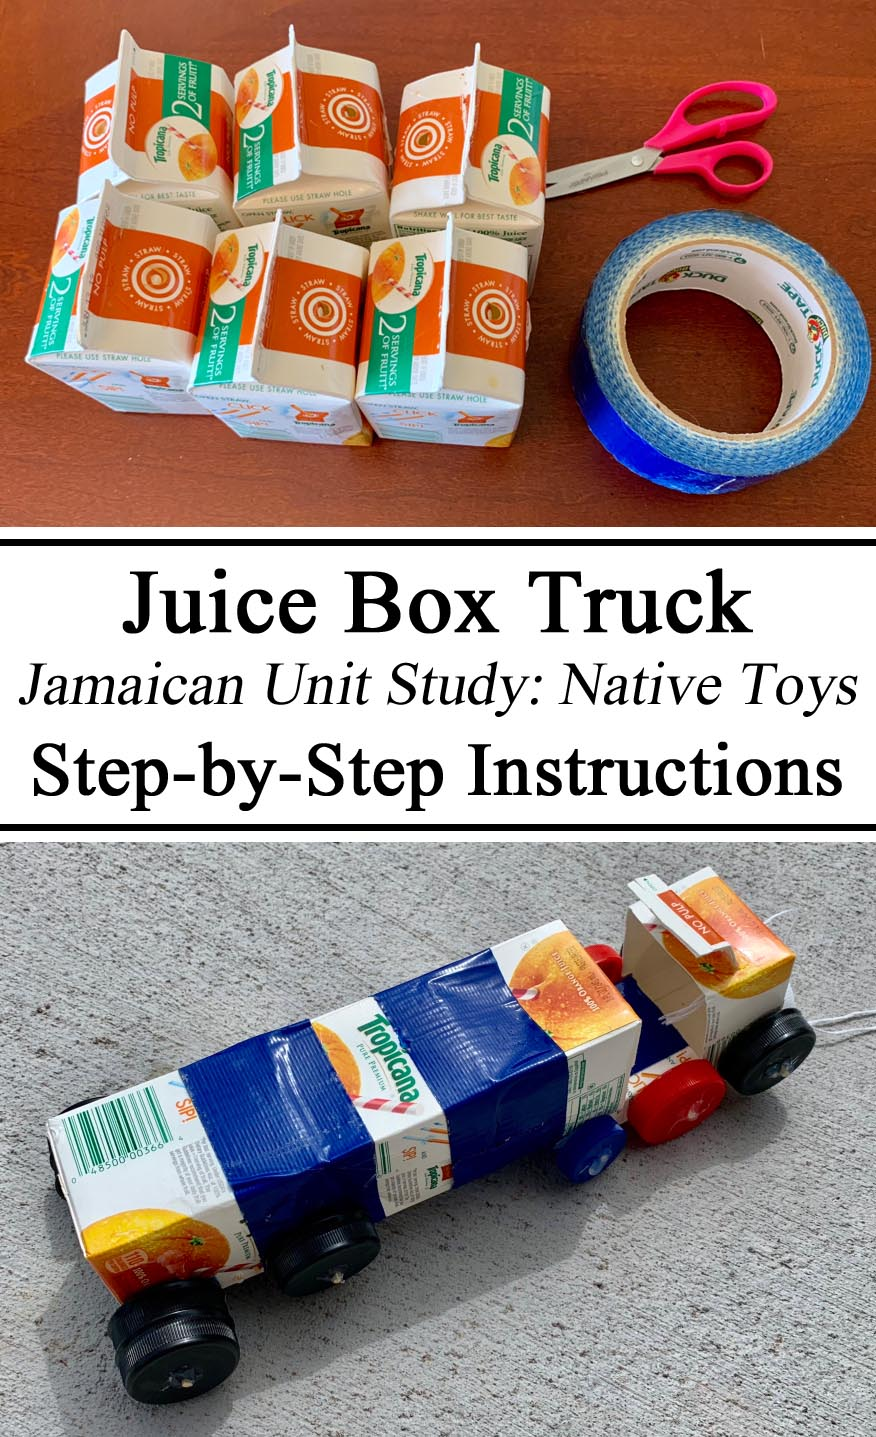 Homeschooling, Homeschool, Juice Box Truck Jamaican Olden Days Toys Handmade Upcycling Indigenous Games Unit Study Jamaica Cultures of the World Hands on Learning Instructions Step by Step Milk Carton Truck Bottle caps #travelingthroughlearning Junk Modeling Reuse Reduce Recycle Green Earth Day Unschooling, Preschool, Kindergarten, STEM Challenge Activities for Kids Summer, Ideas Inspiration Montessori